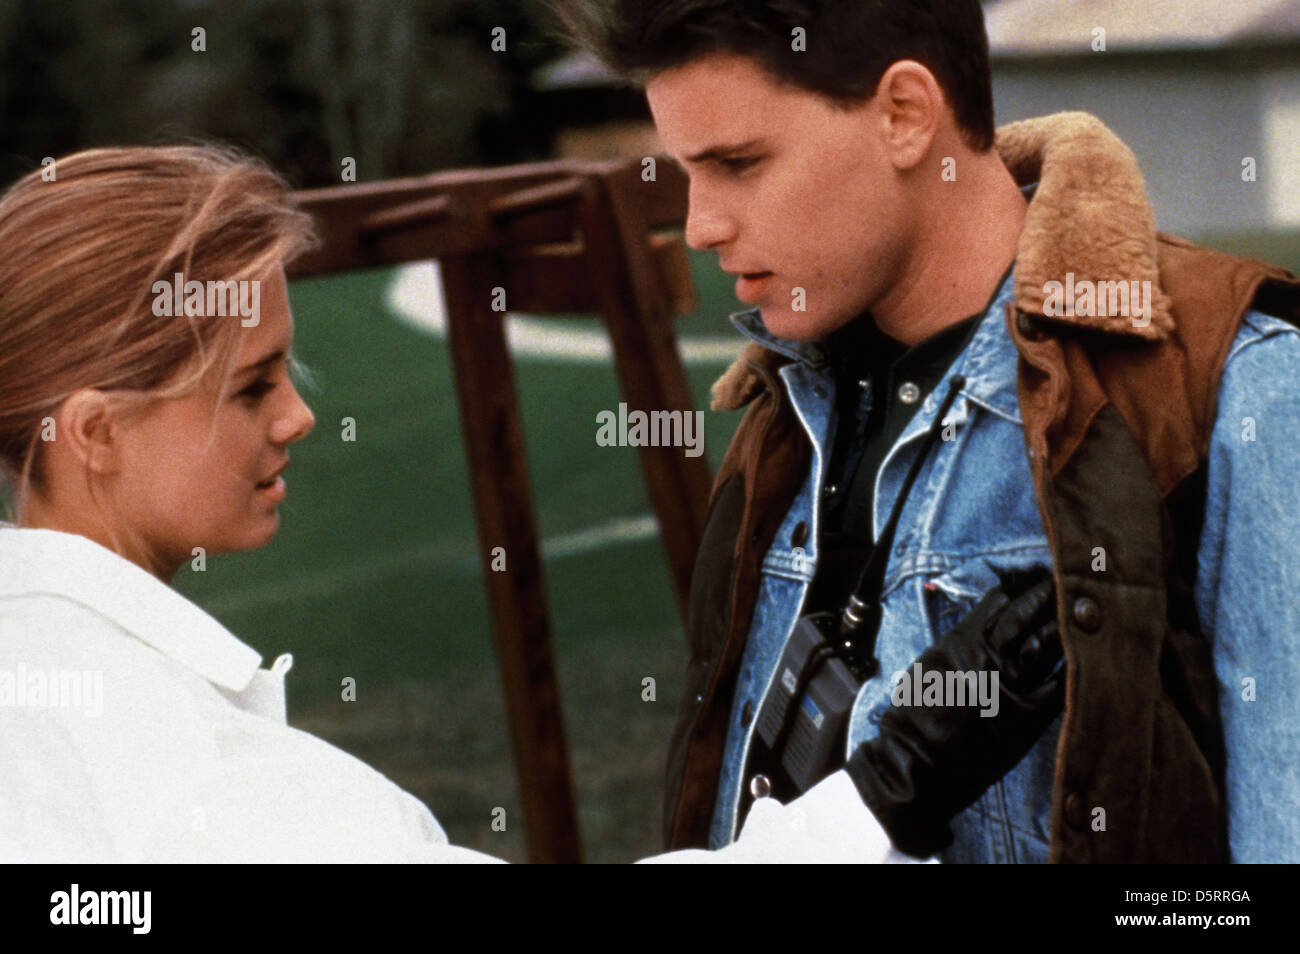 NICOLE EGGERT & COREY HAIM BLOWN AWAY (1993 Stock Photo ...